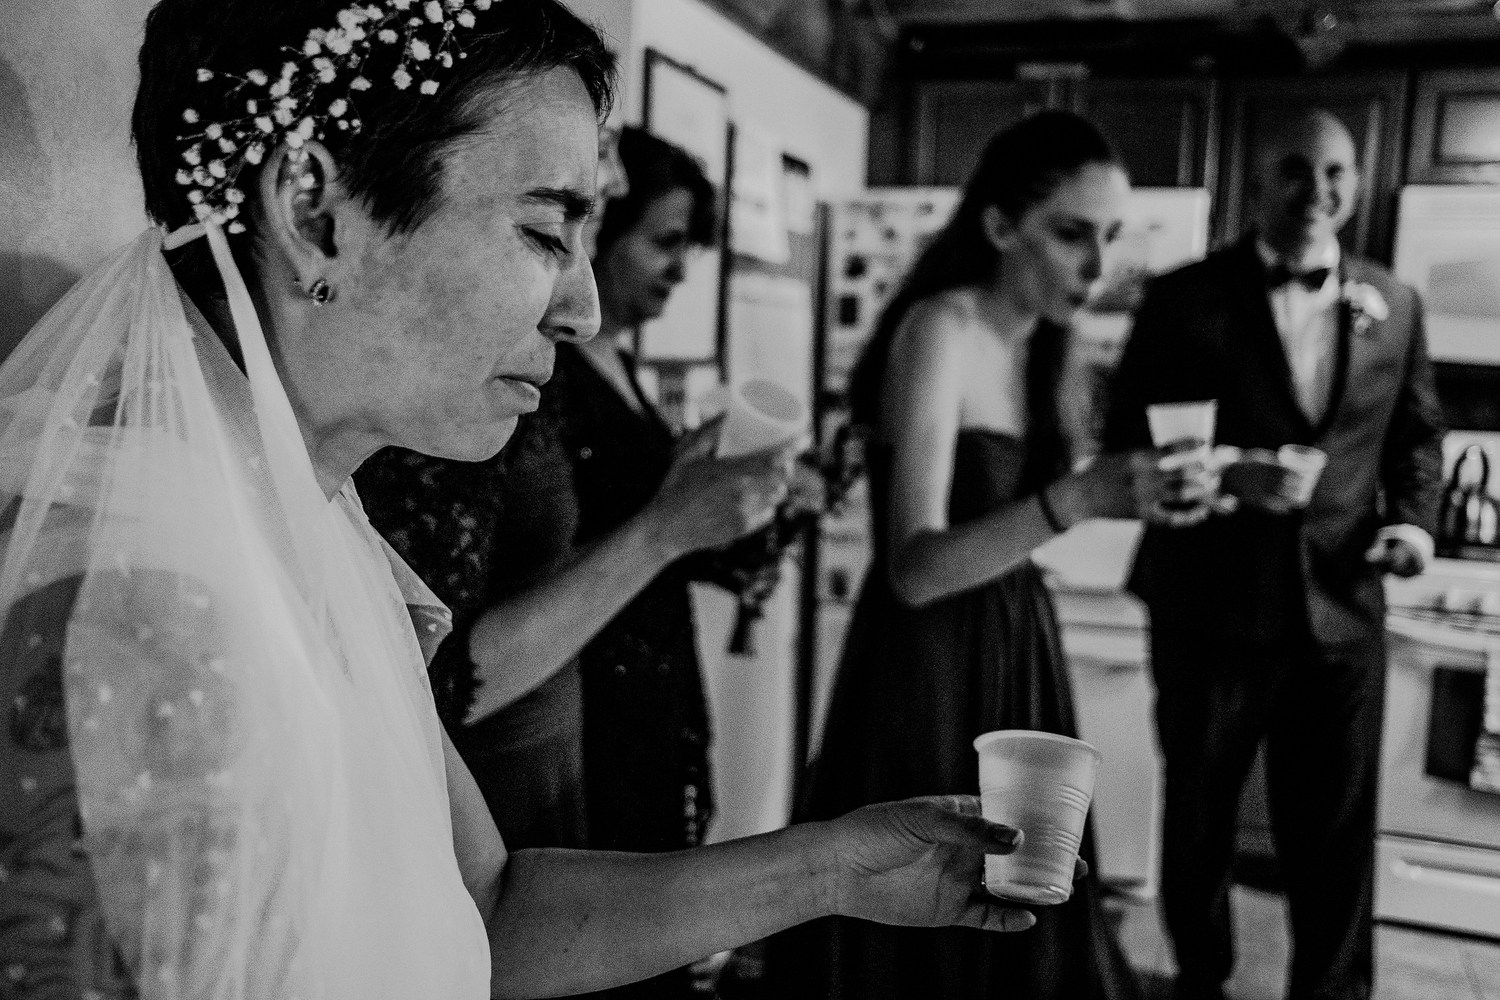 candid wedding photography moment before ceremony